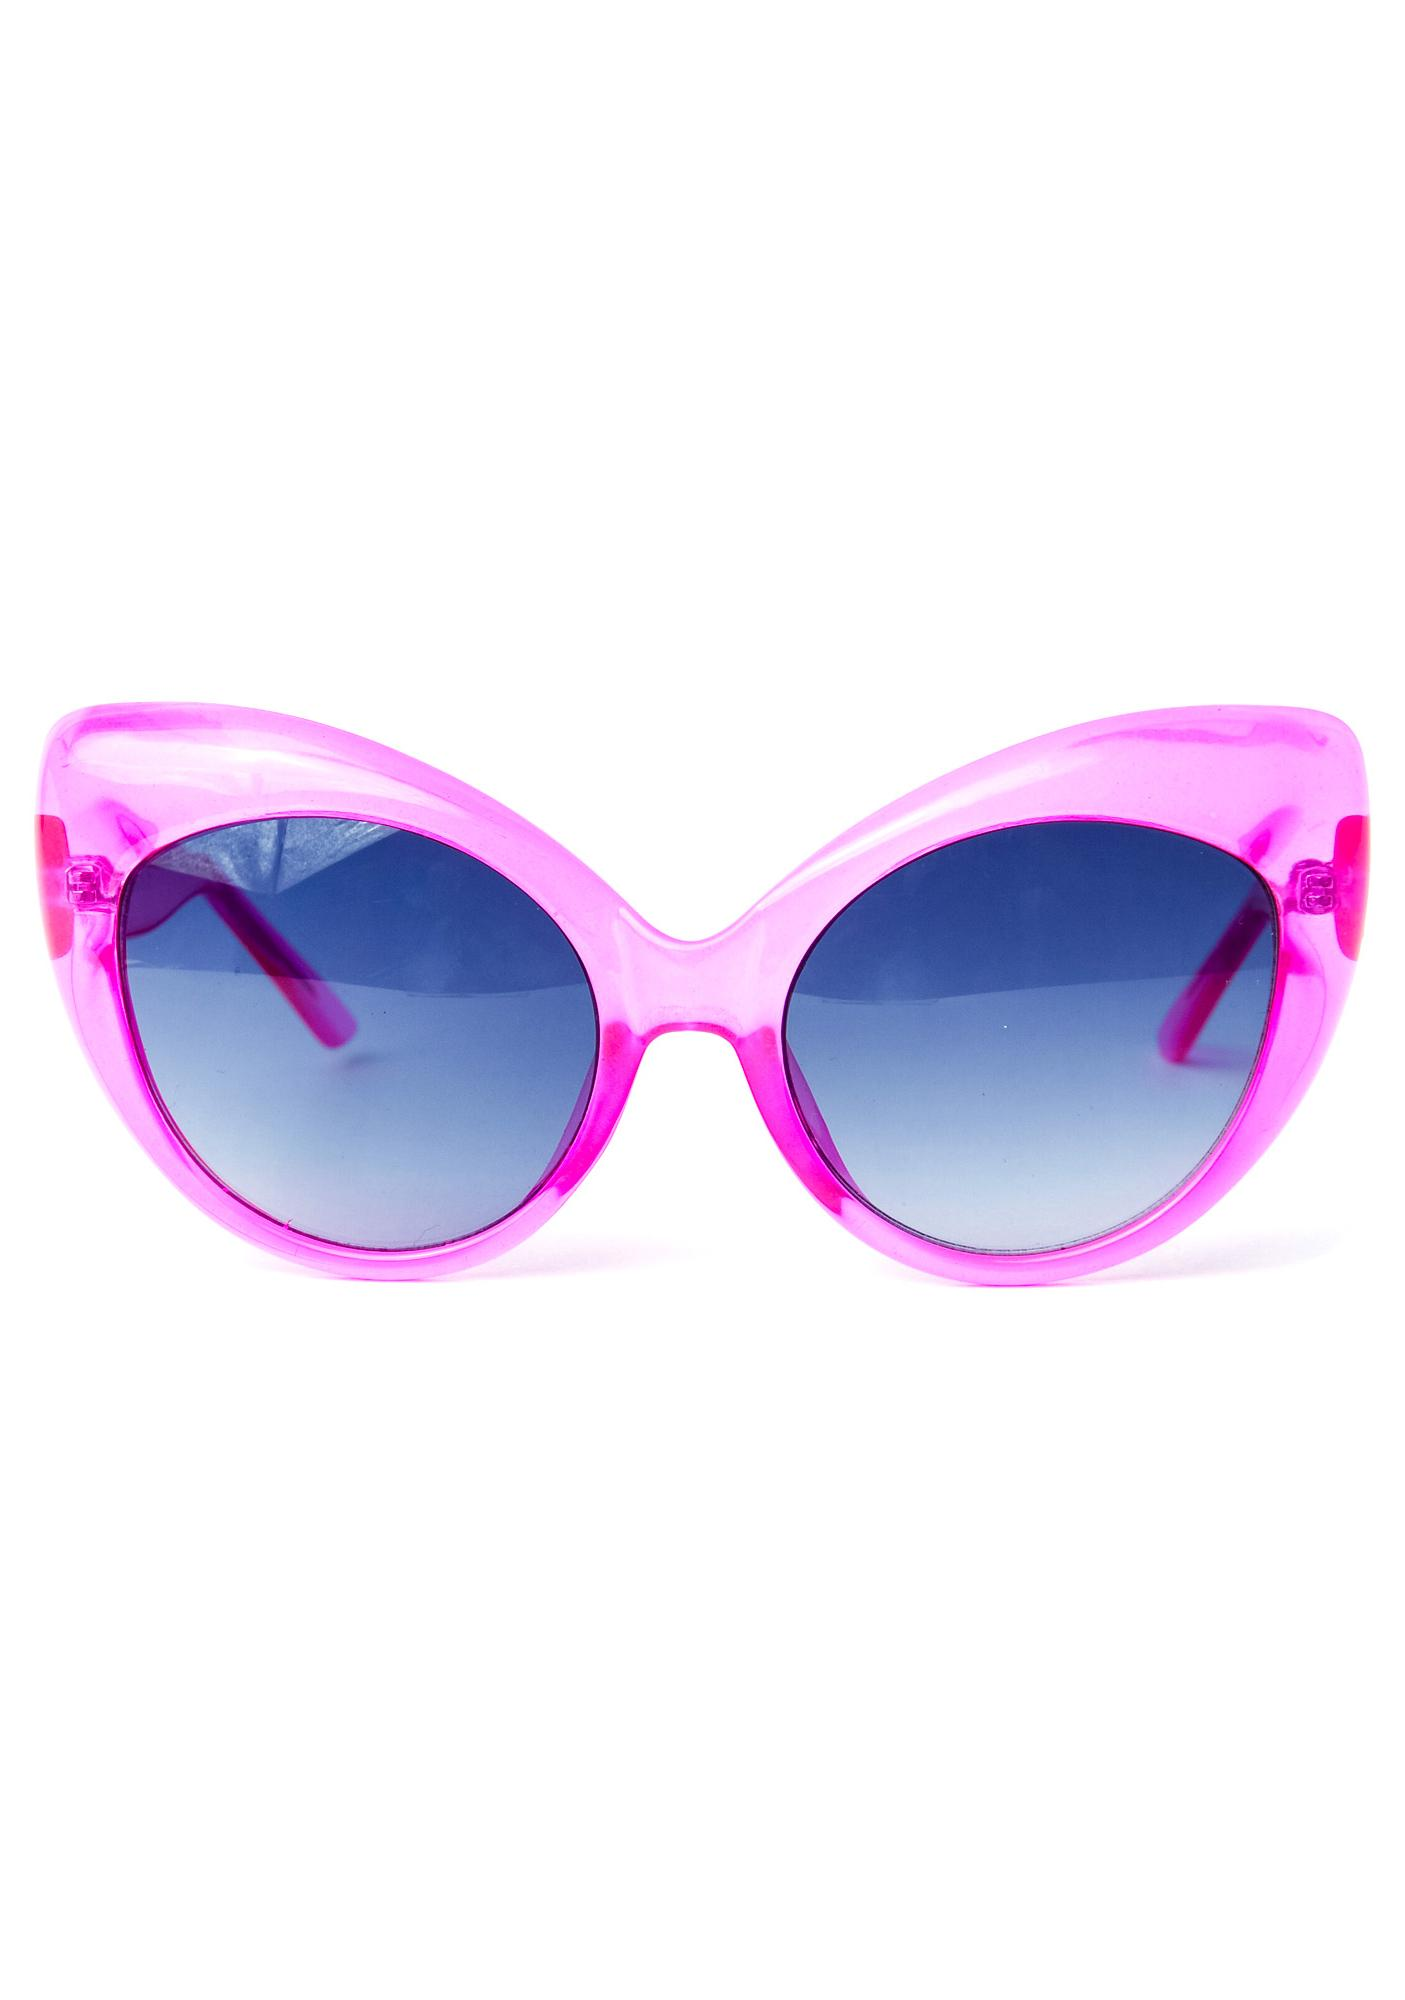 UNIF The Moody's Sunglasses